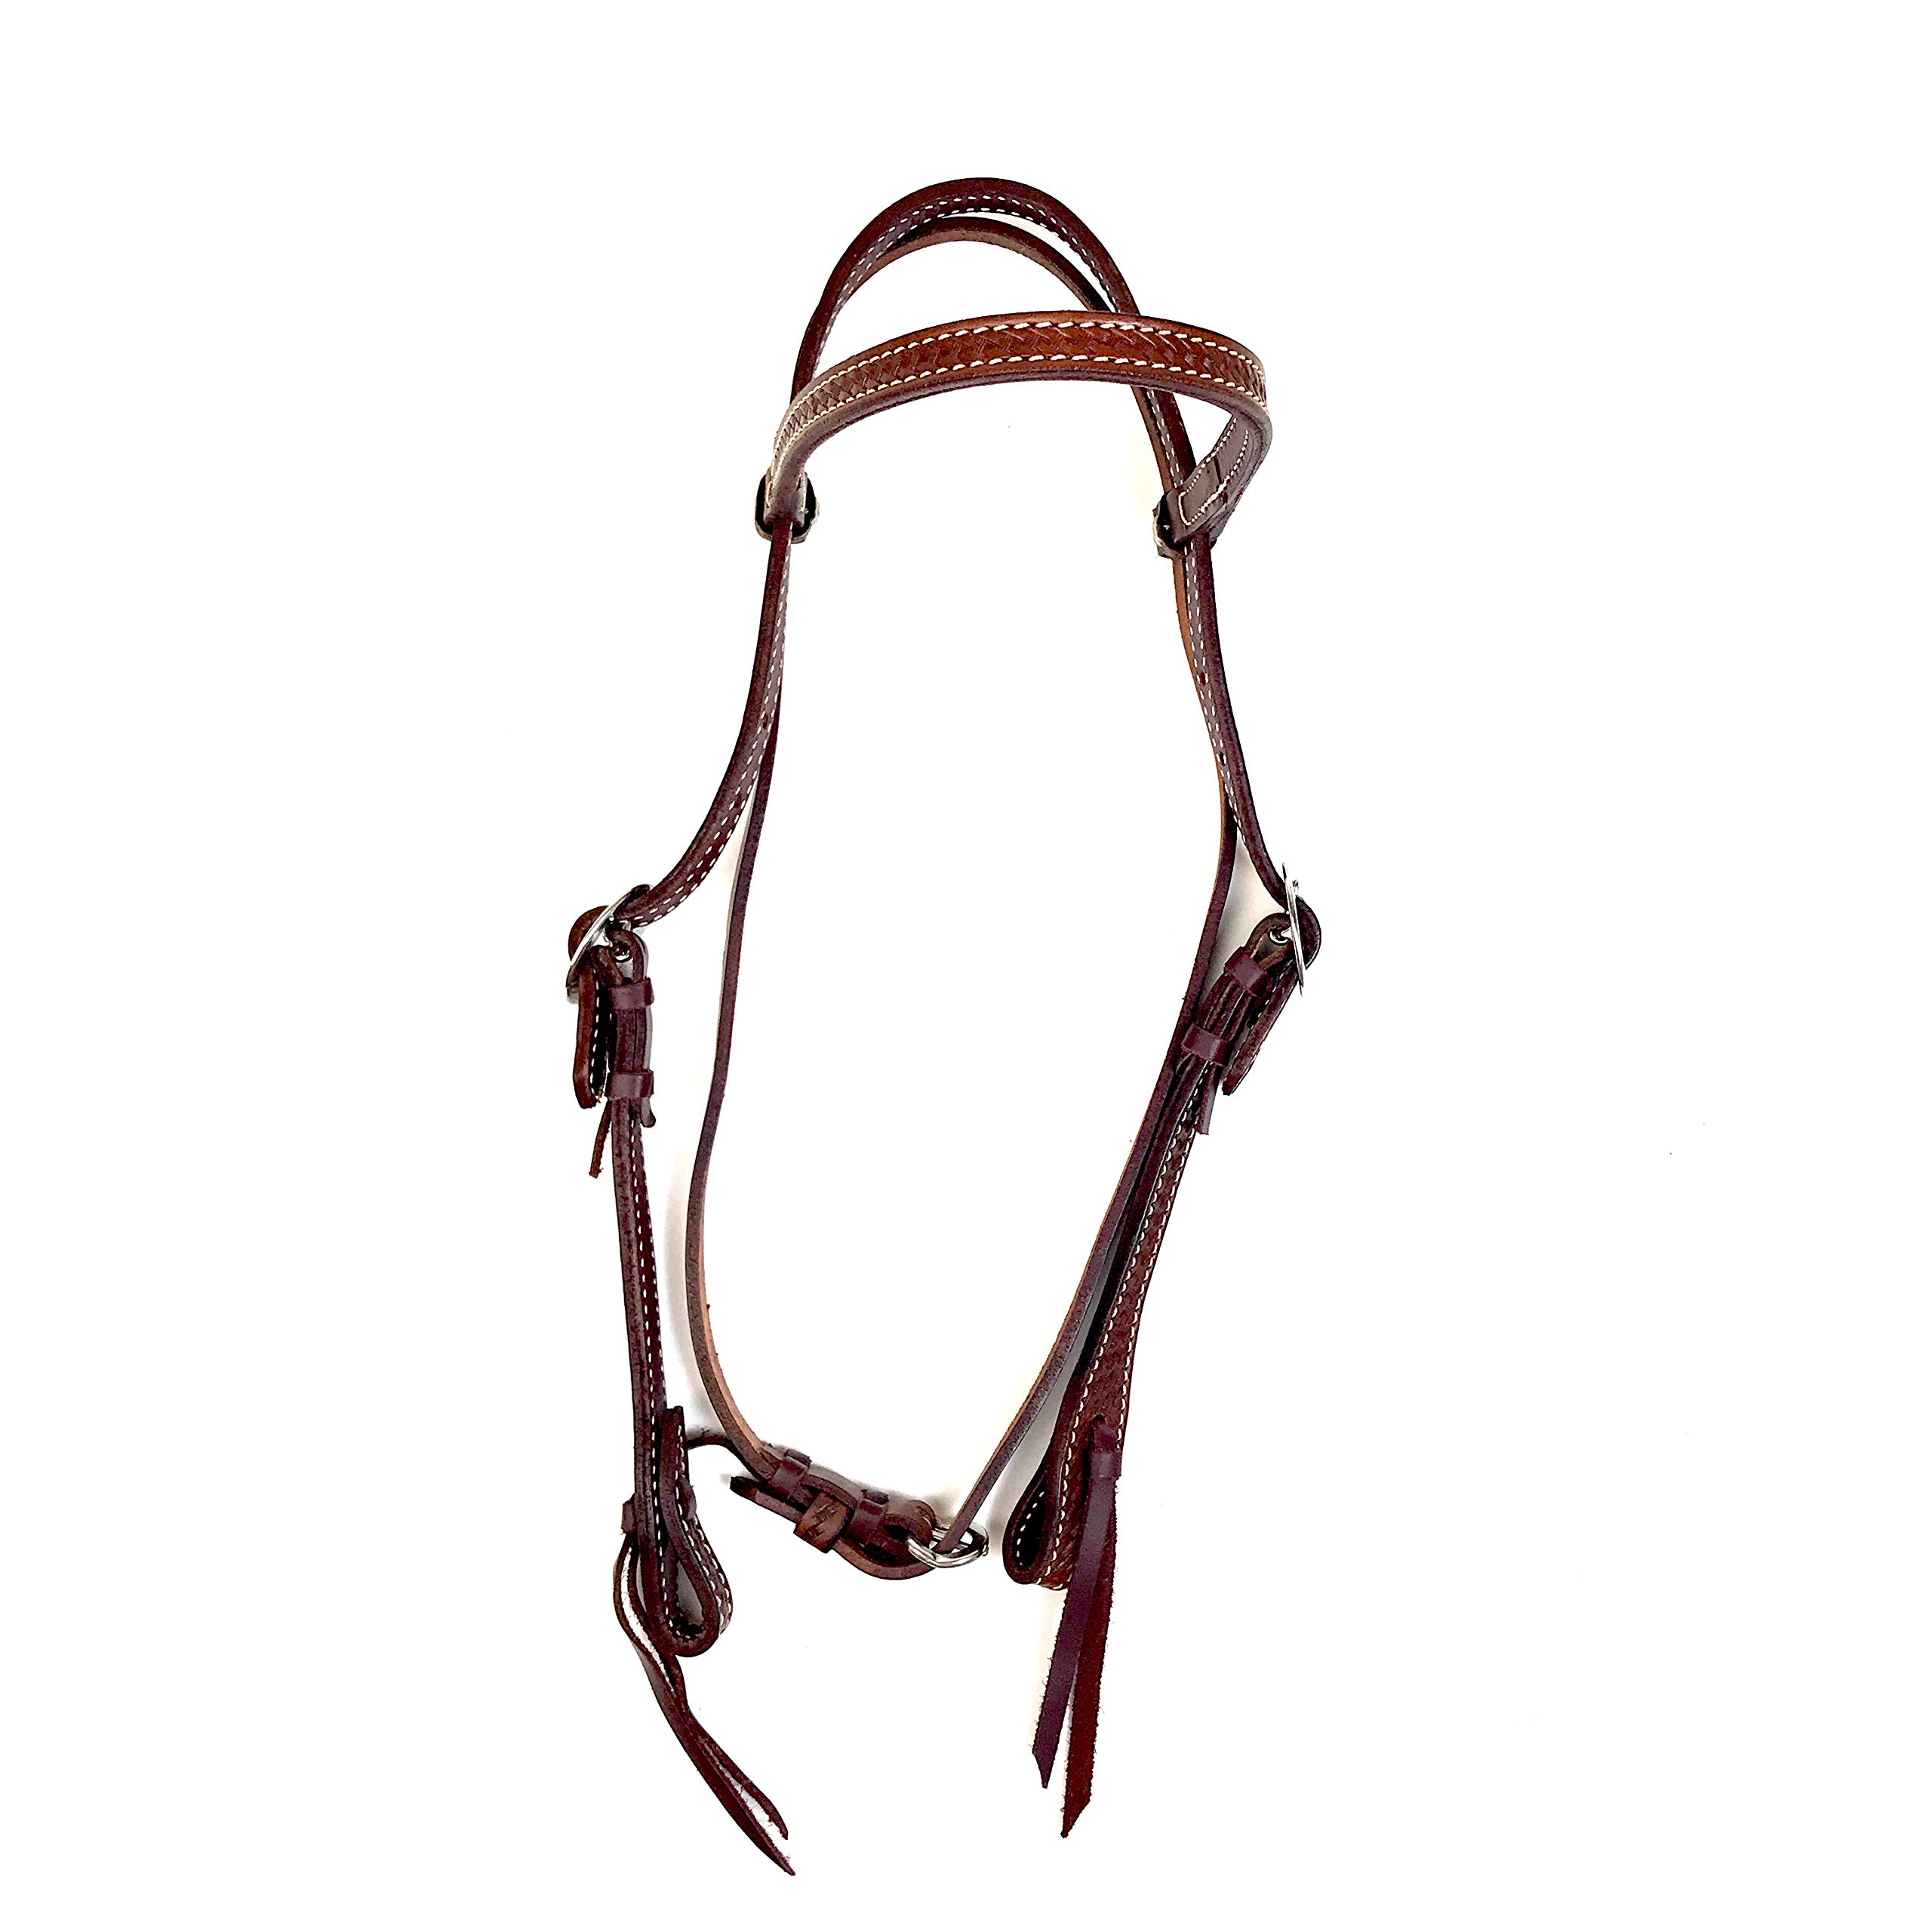 Alamo Saddlery LLC Rancher Supply- 'Light Leather Elite Headstall'